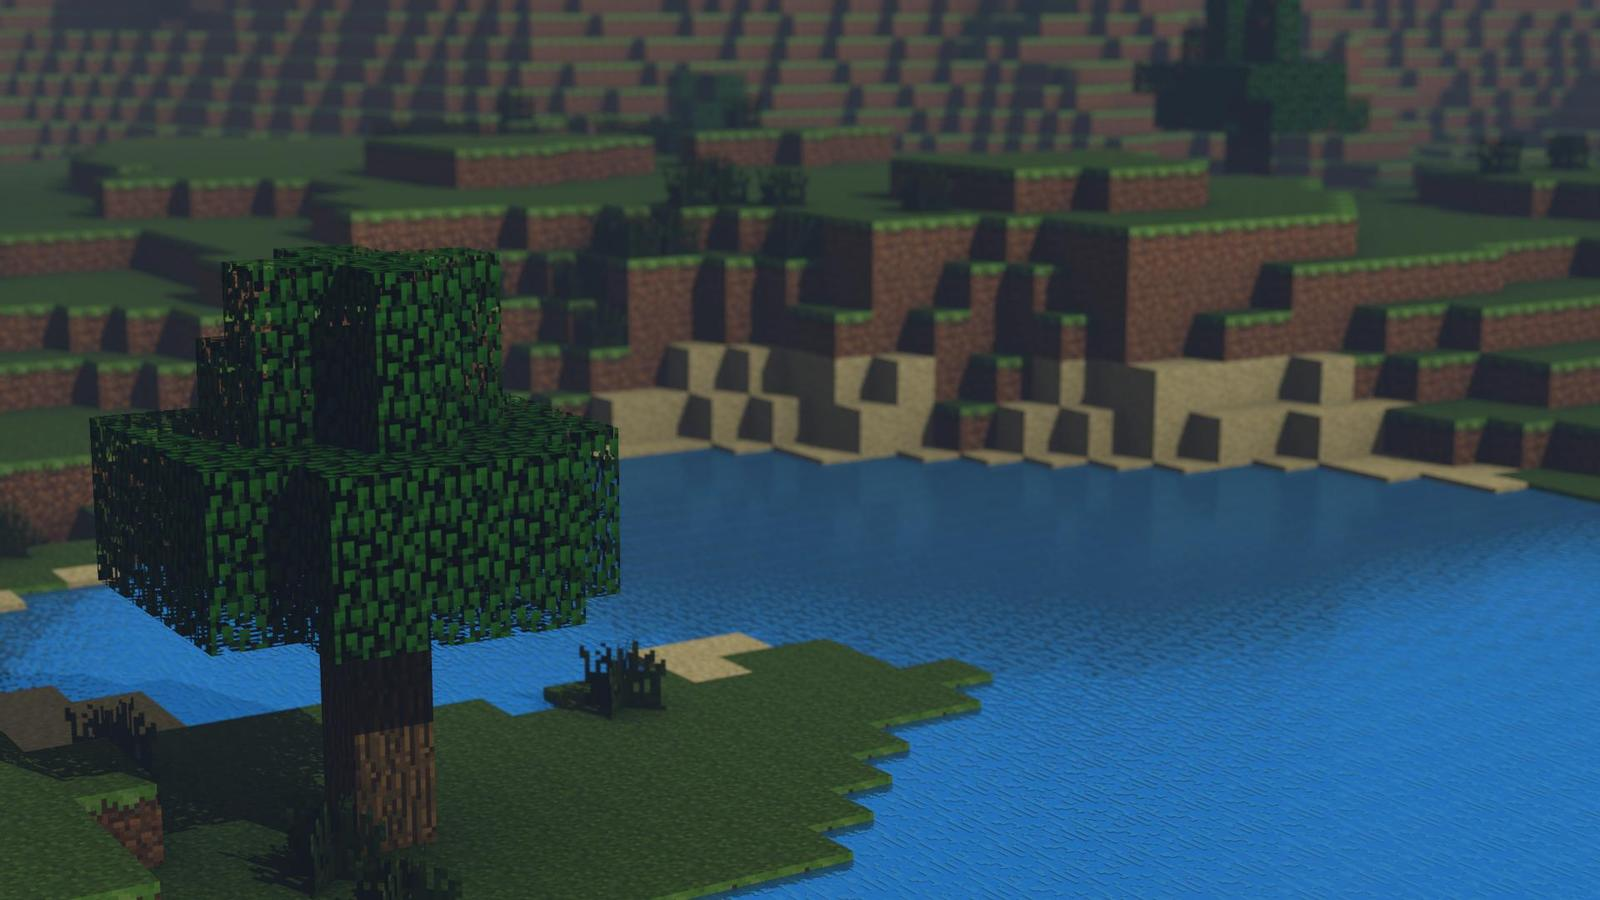 1600x900 minecraft wallpapers - photo #11